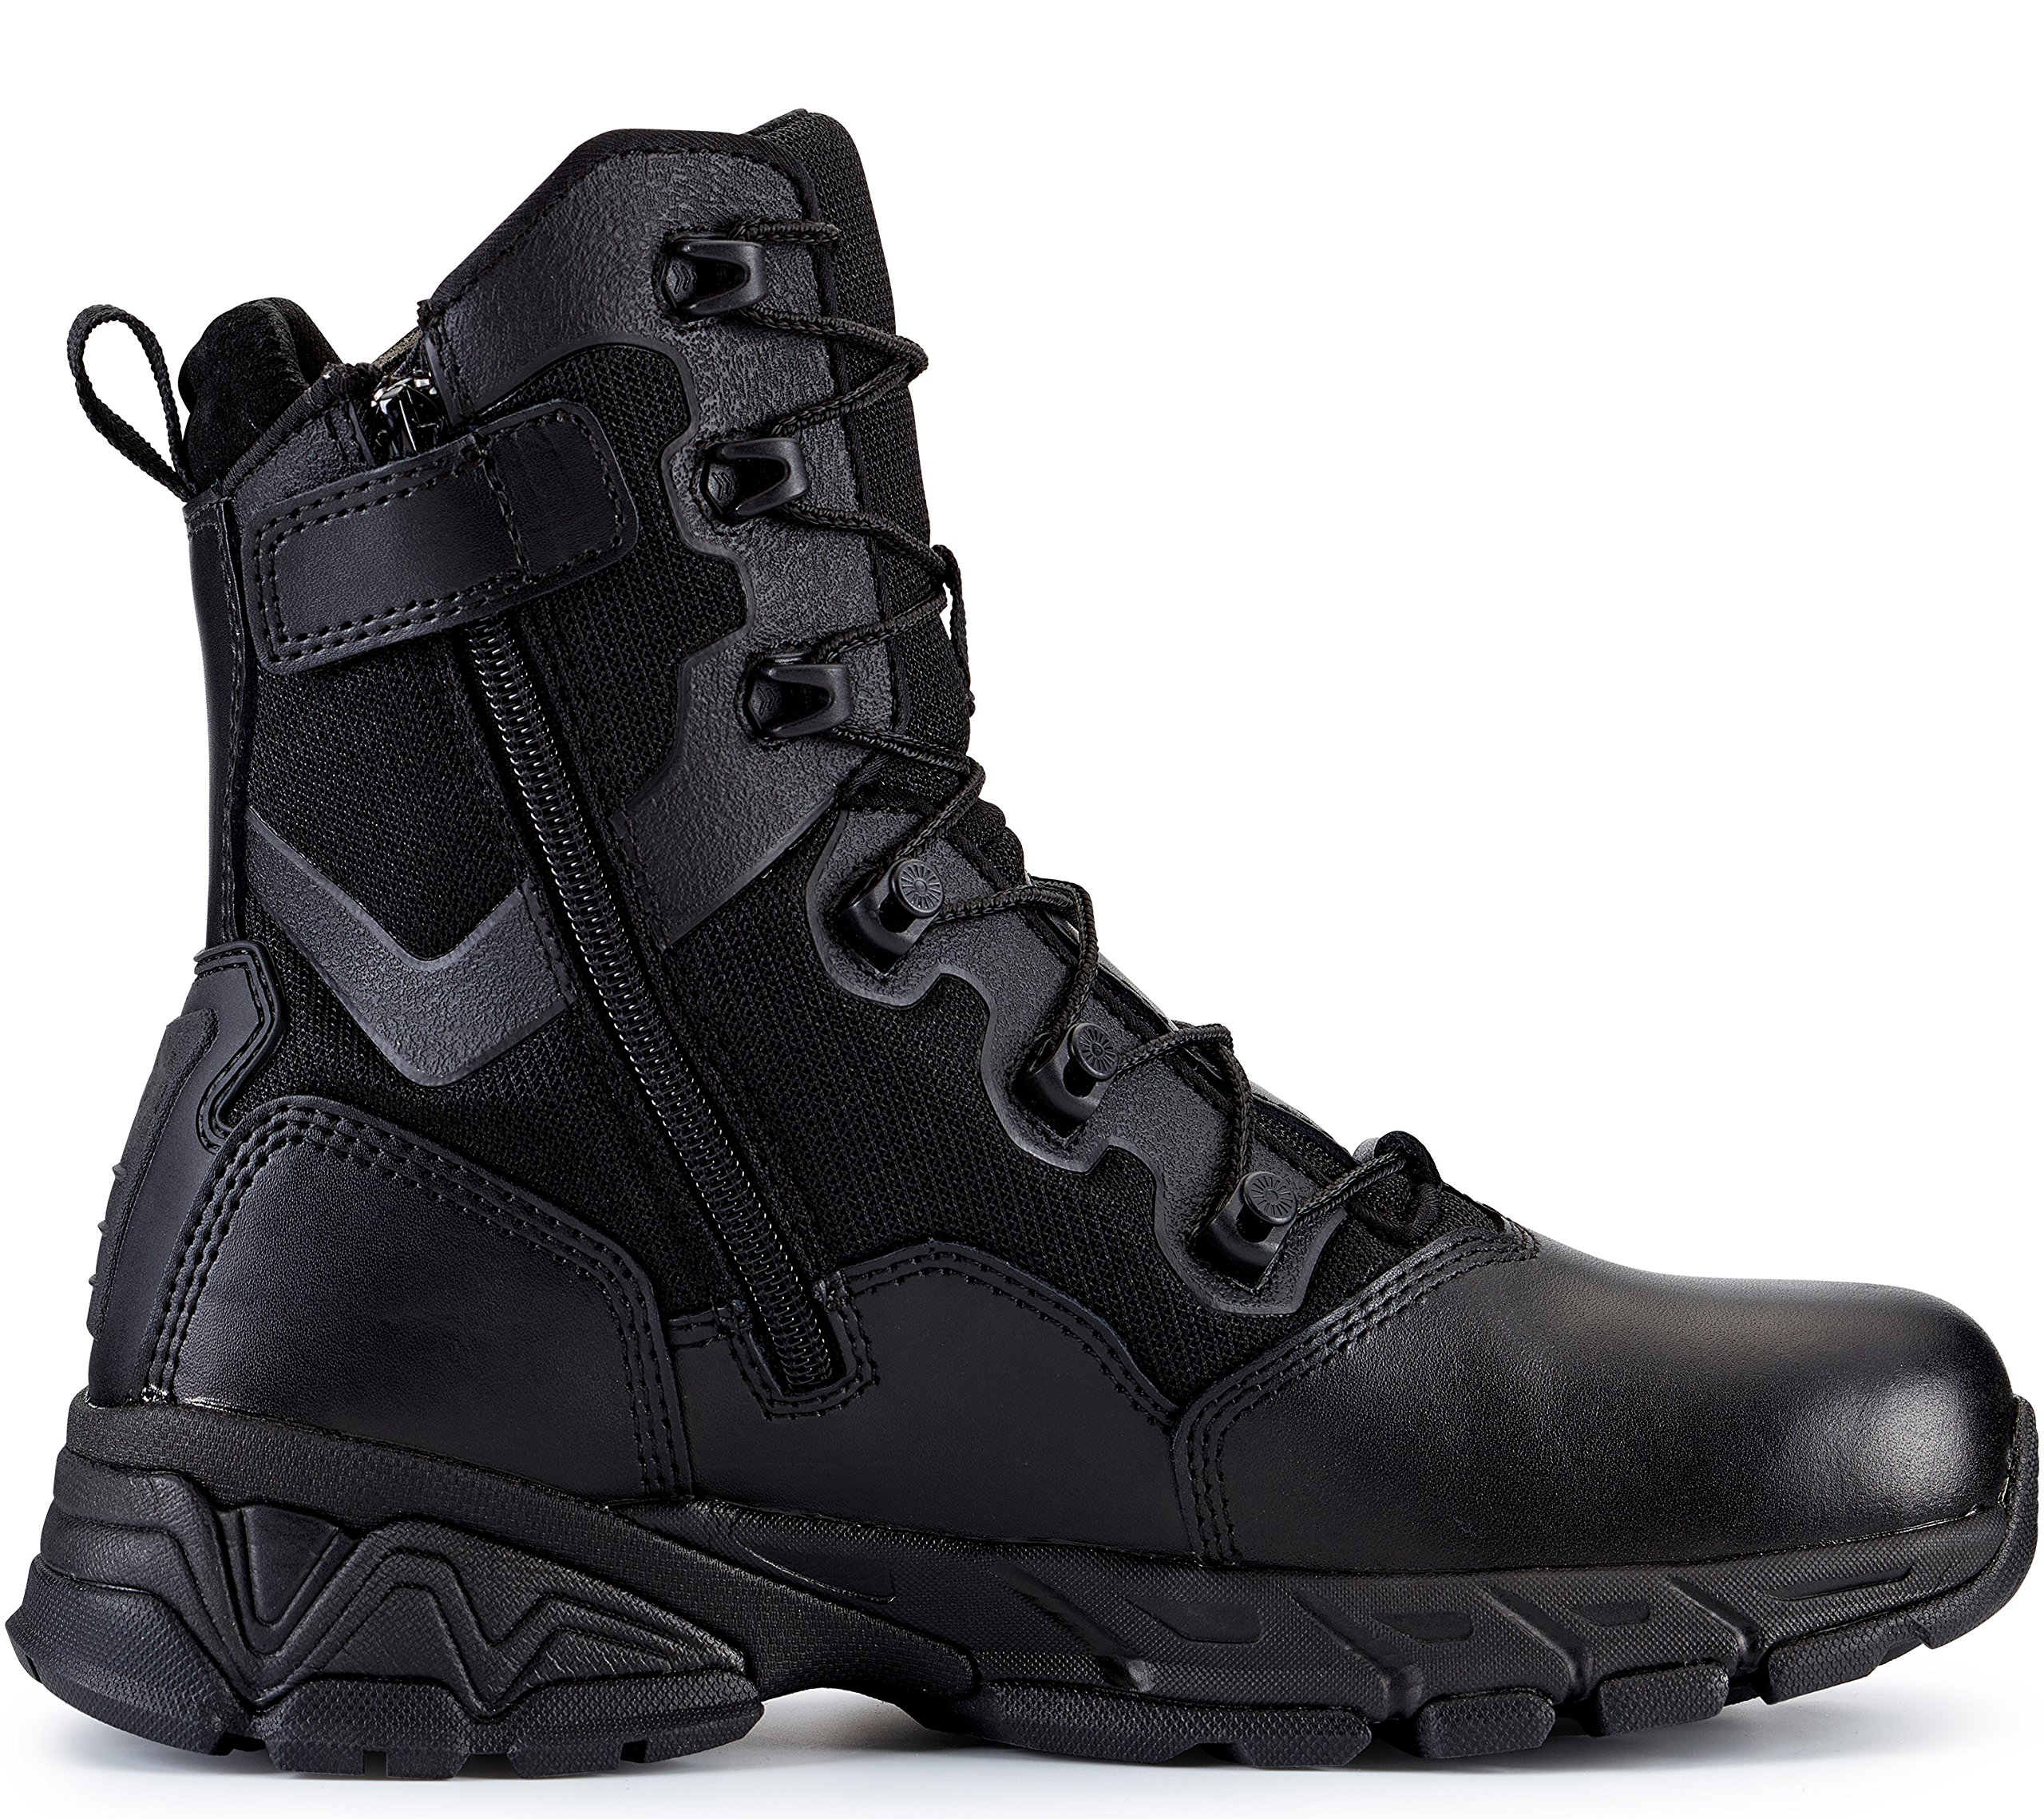 Maelstrom TAC ELITE Men's 8'' Black Waterproof Boots With Side Zipper for Military Tactical Work Security | Waterproof Athletic Stylish Comfortable Lightweight Boots | One year Manufacturer's Warranty, Black, Size 12W